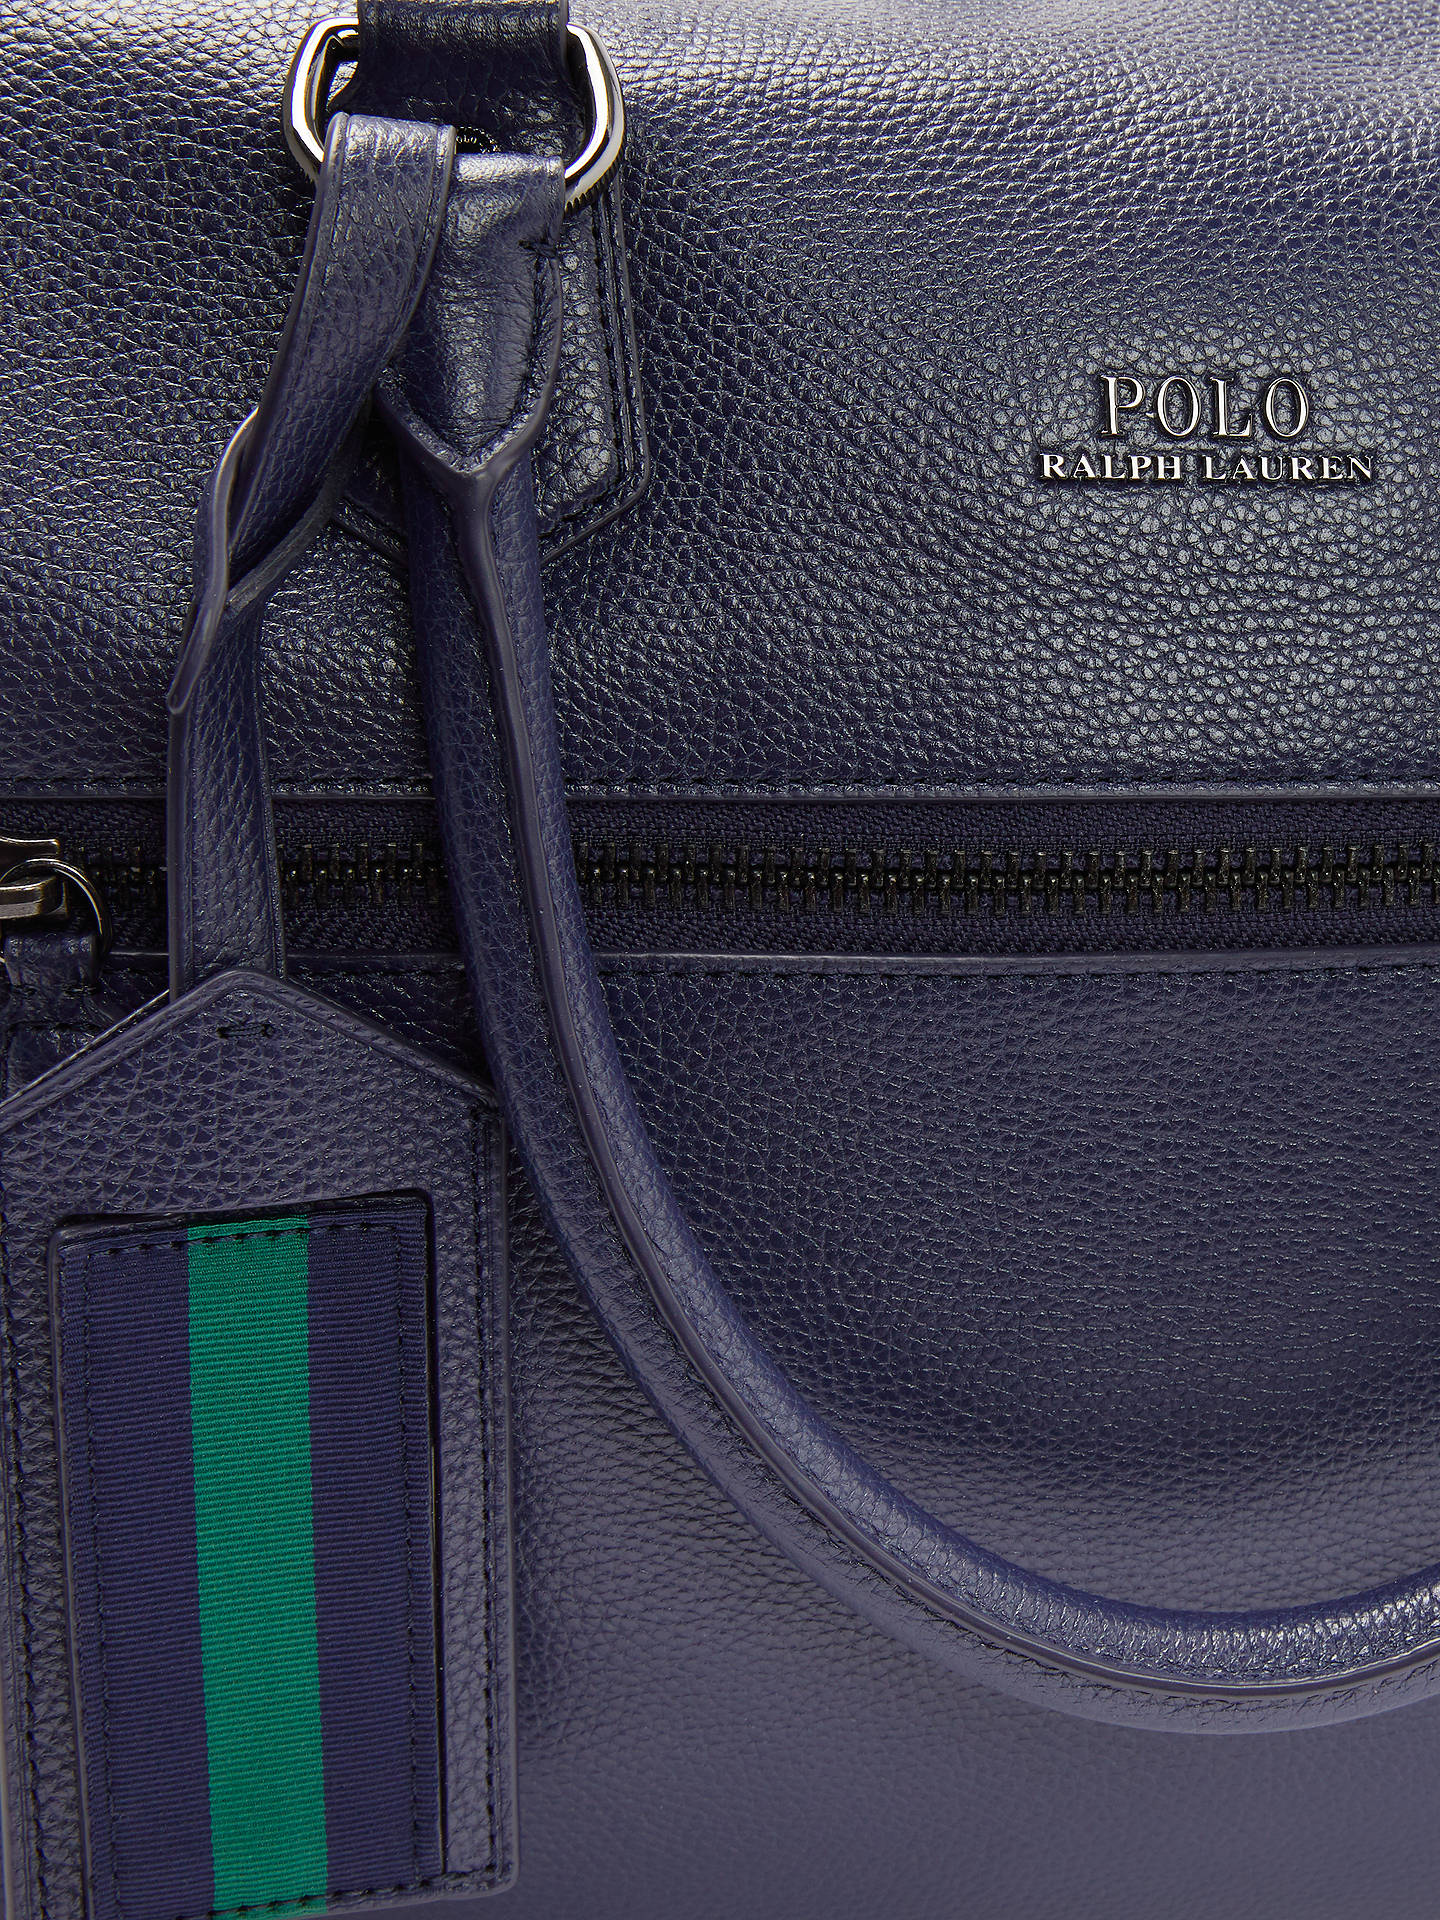 4a6a8e539b78 ... Buy Polo Ralph Lauren Pebble Leather Duffle Bag, Navy Online at  johnlewis.com